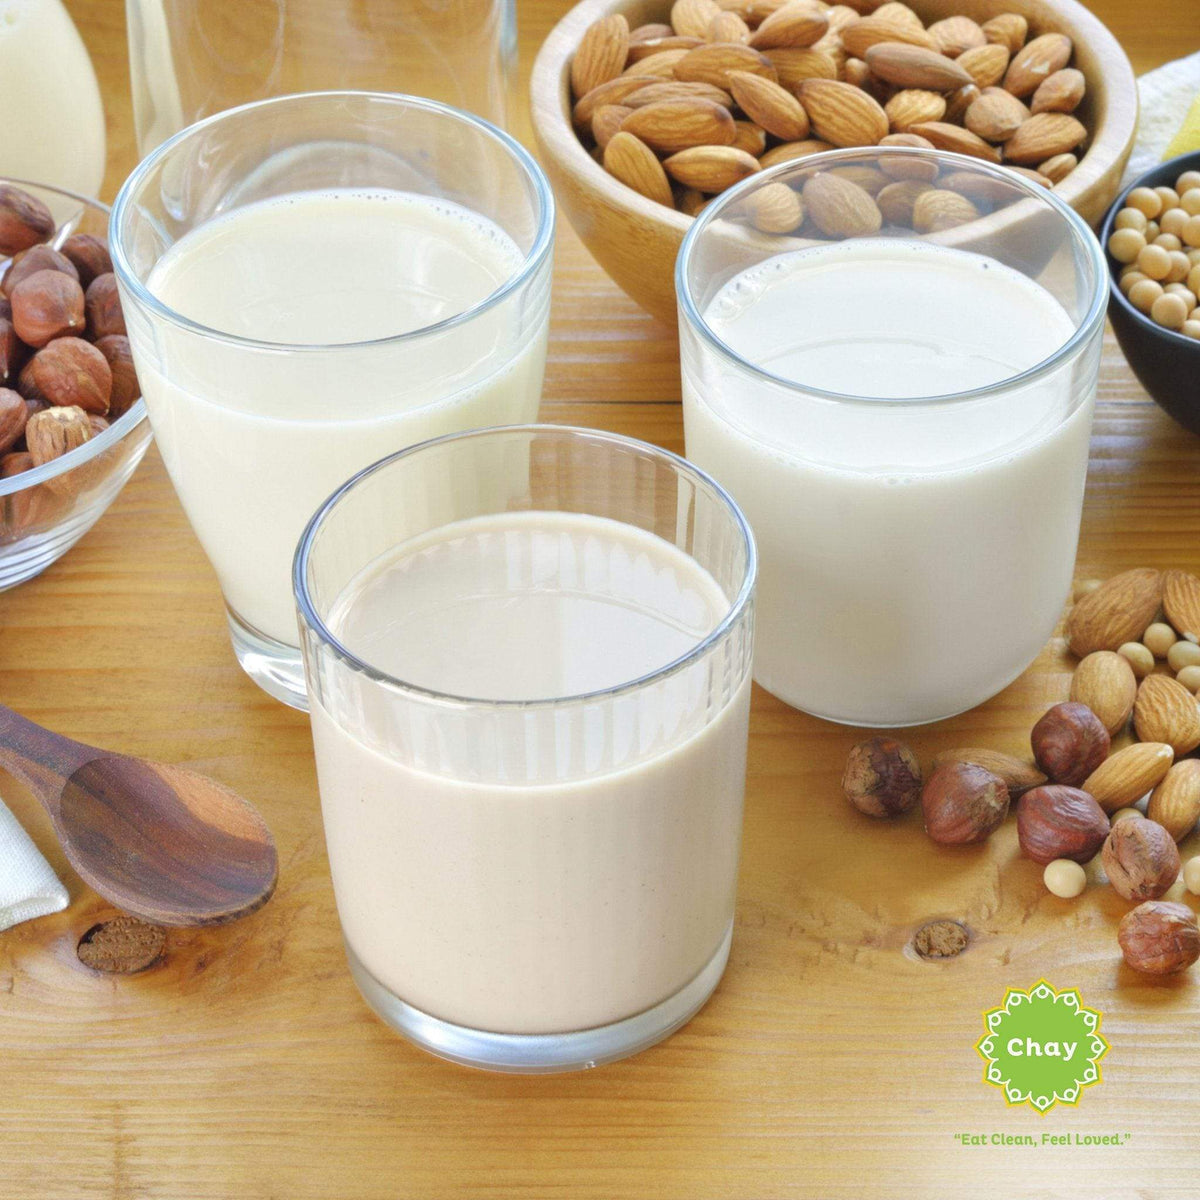 5 Macadamia & Lotus Seed Milk Plan Order with Meal Subscription